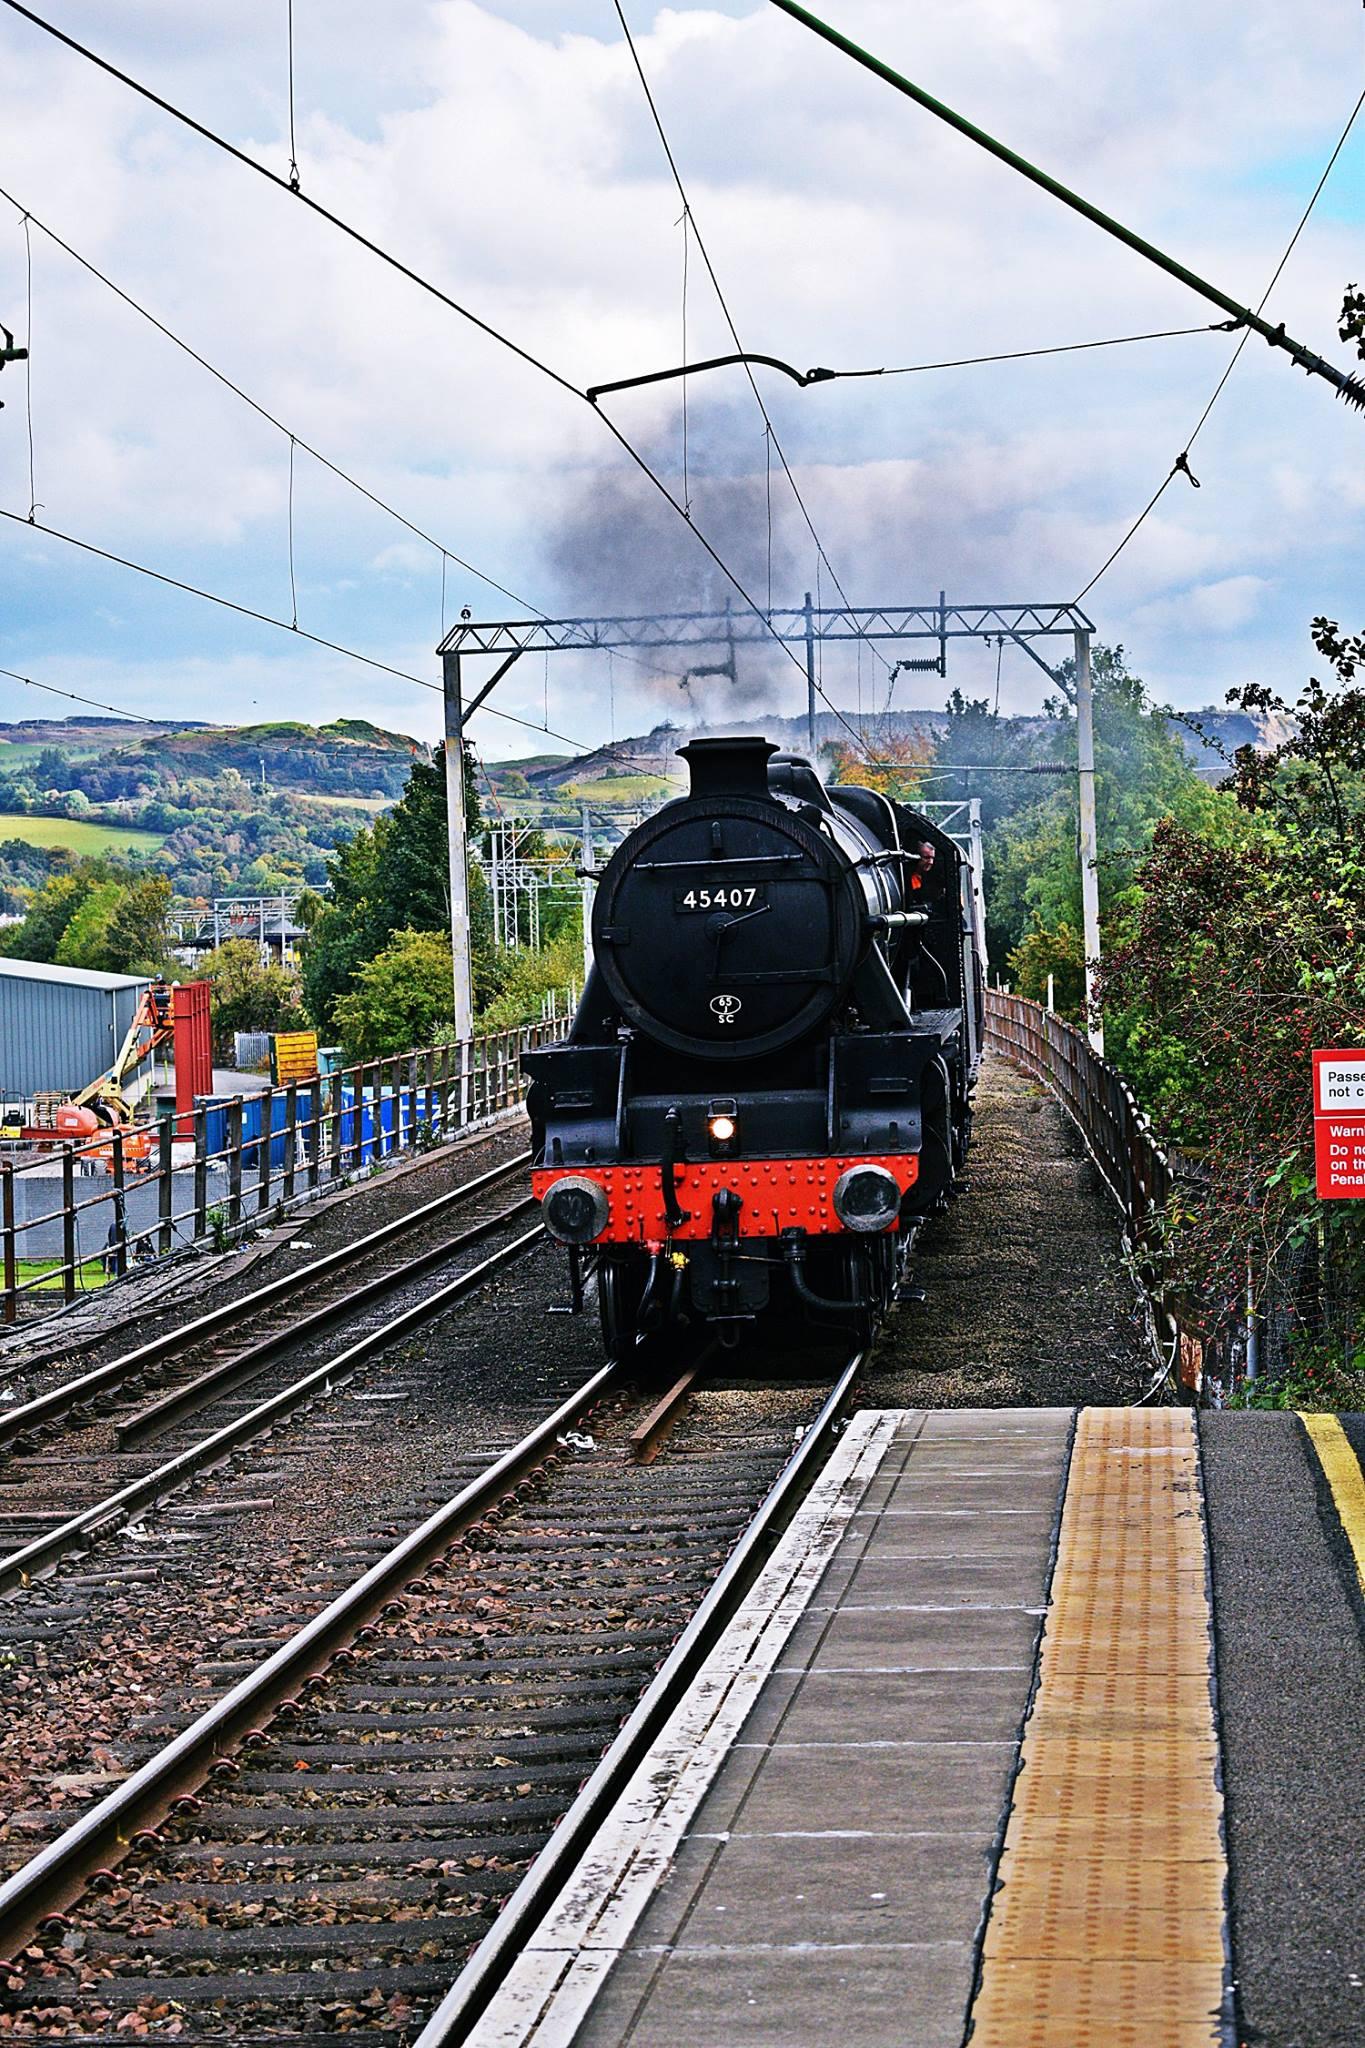 STEAM TRAINS AT ARROCHAR AND DALREOCH RAILWAY STATIONS